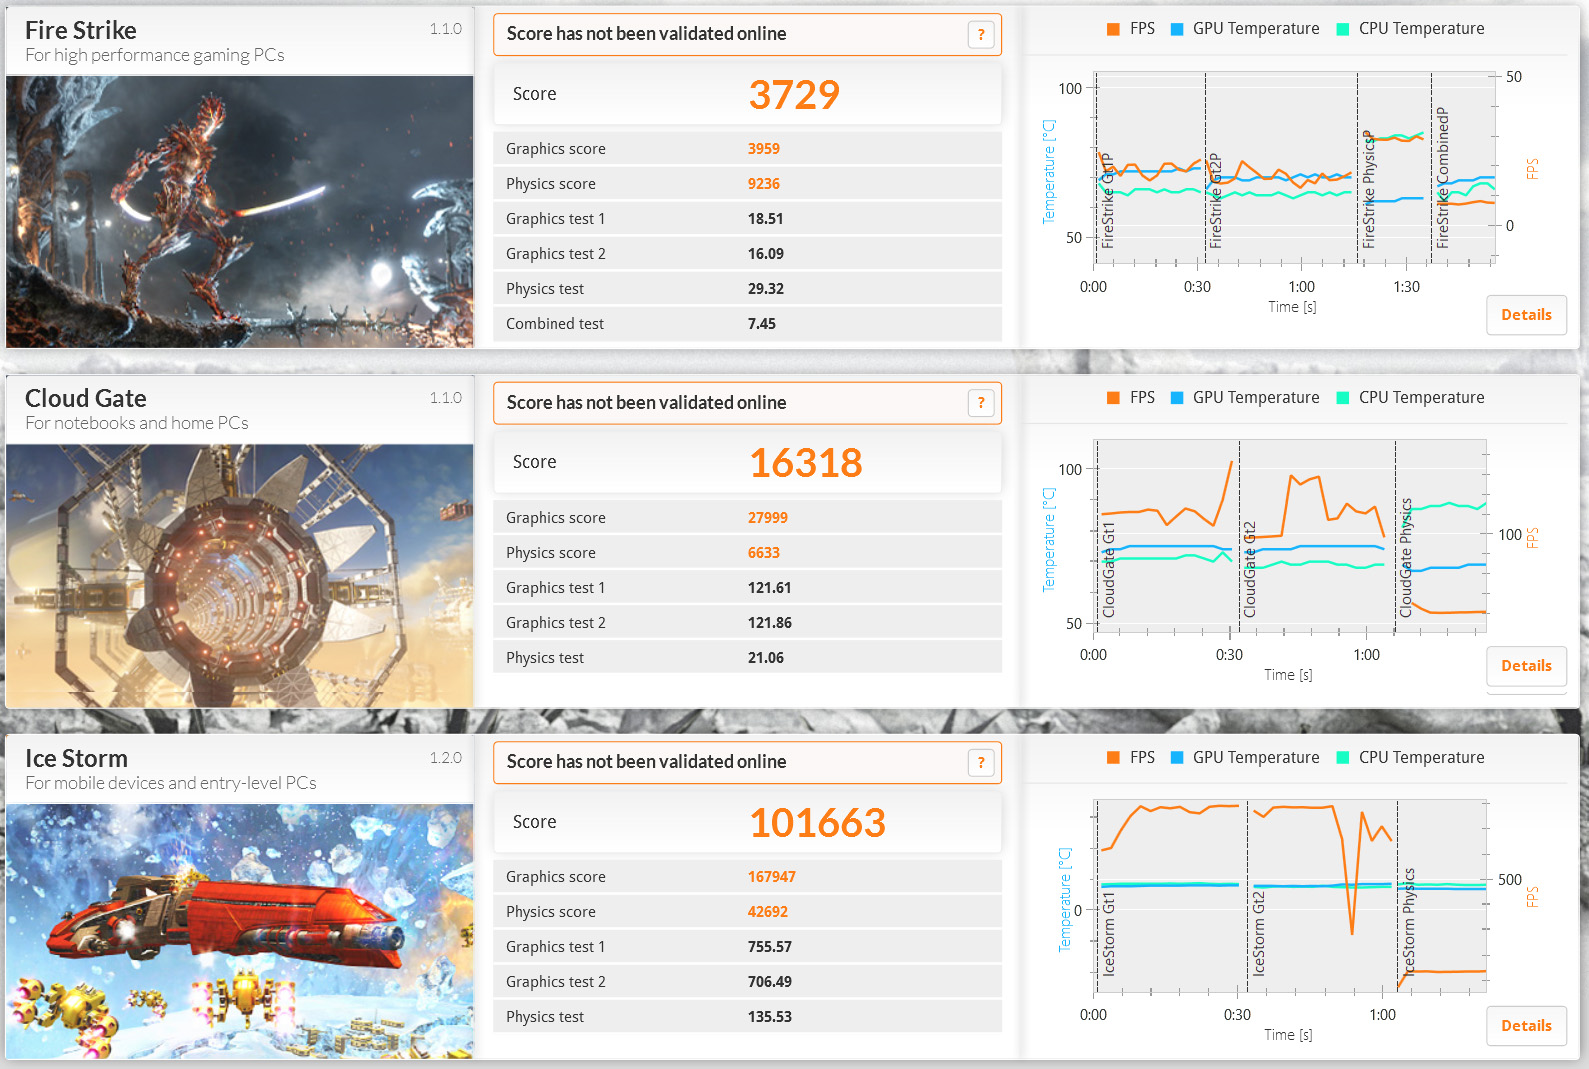 3DMark。Fire Strike/Cloud Gate/Ice Stormの順に3729/16318/101663